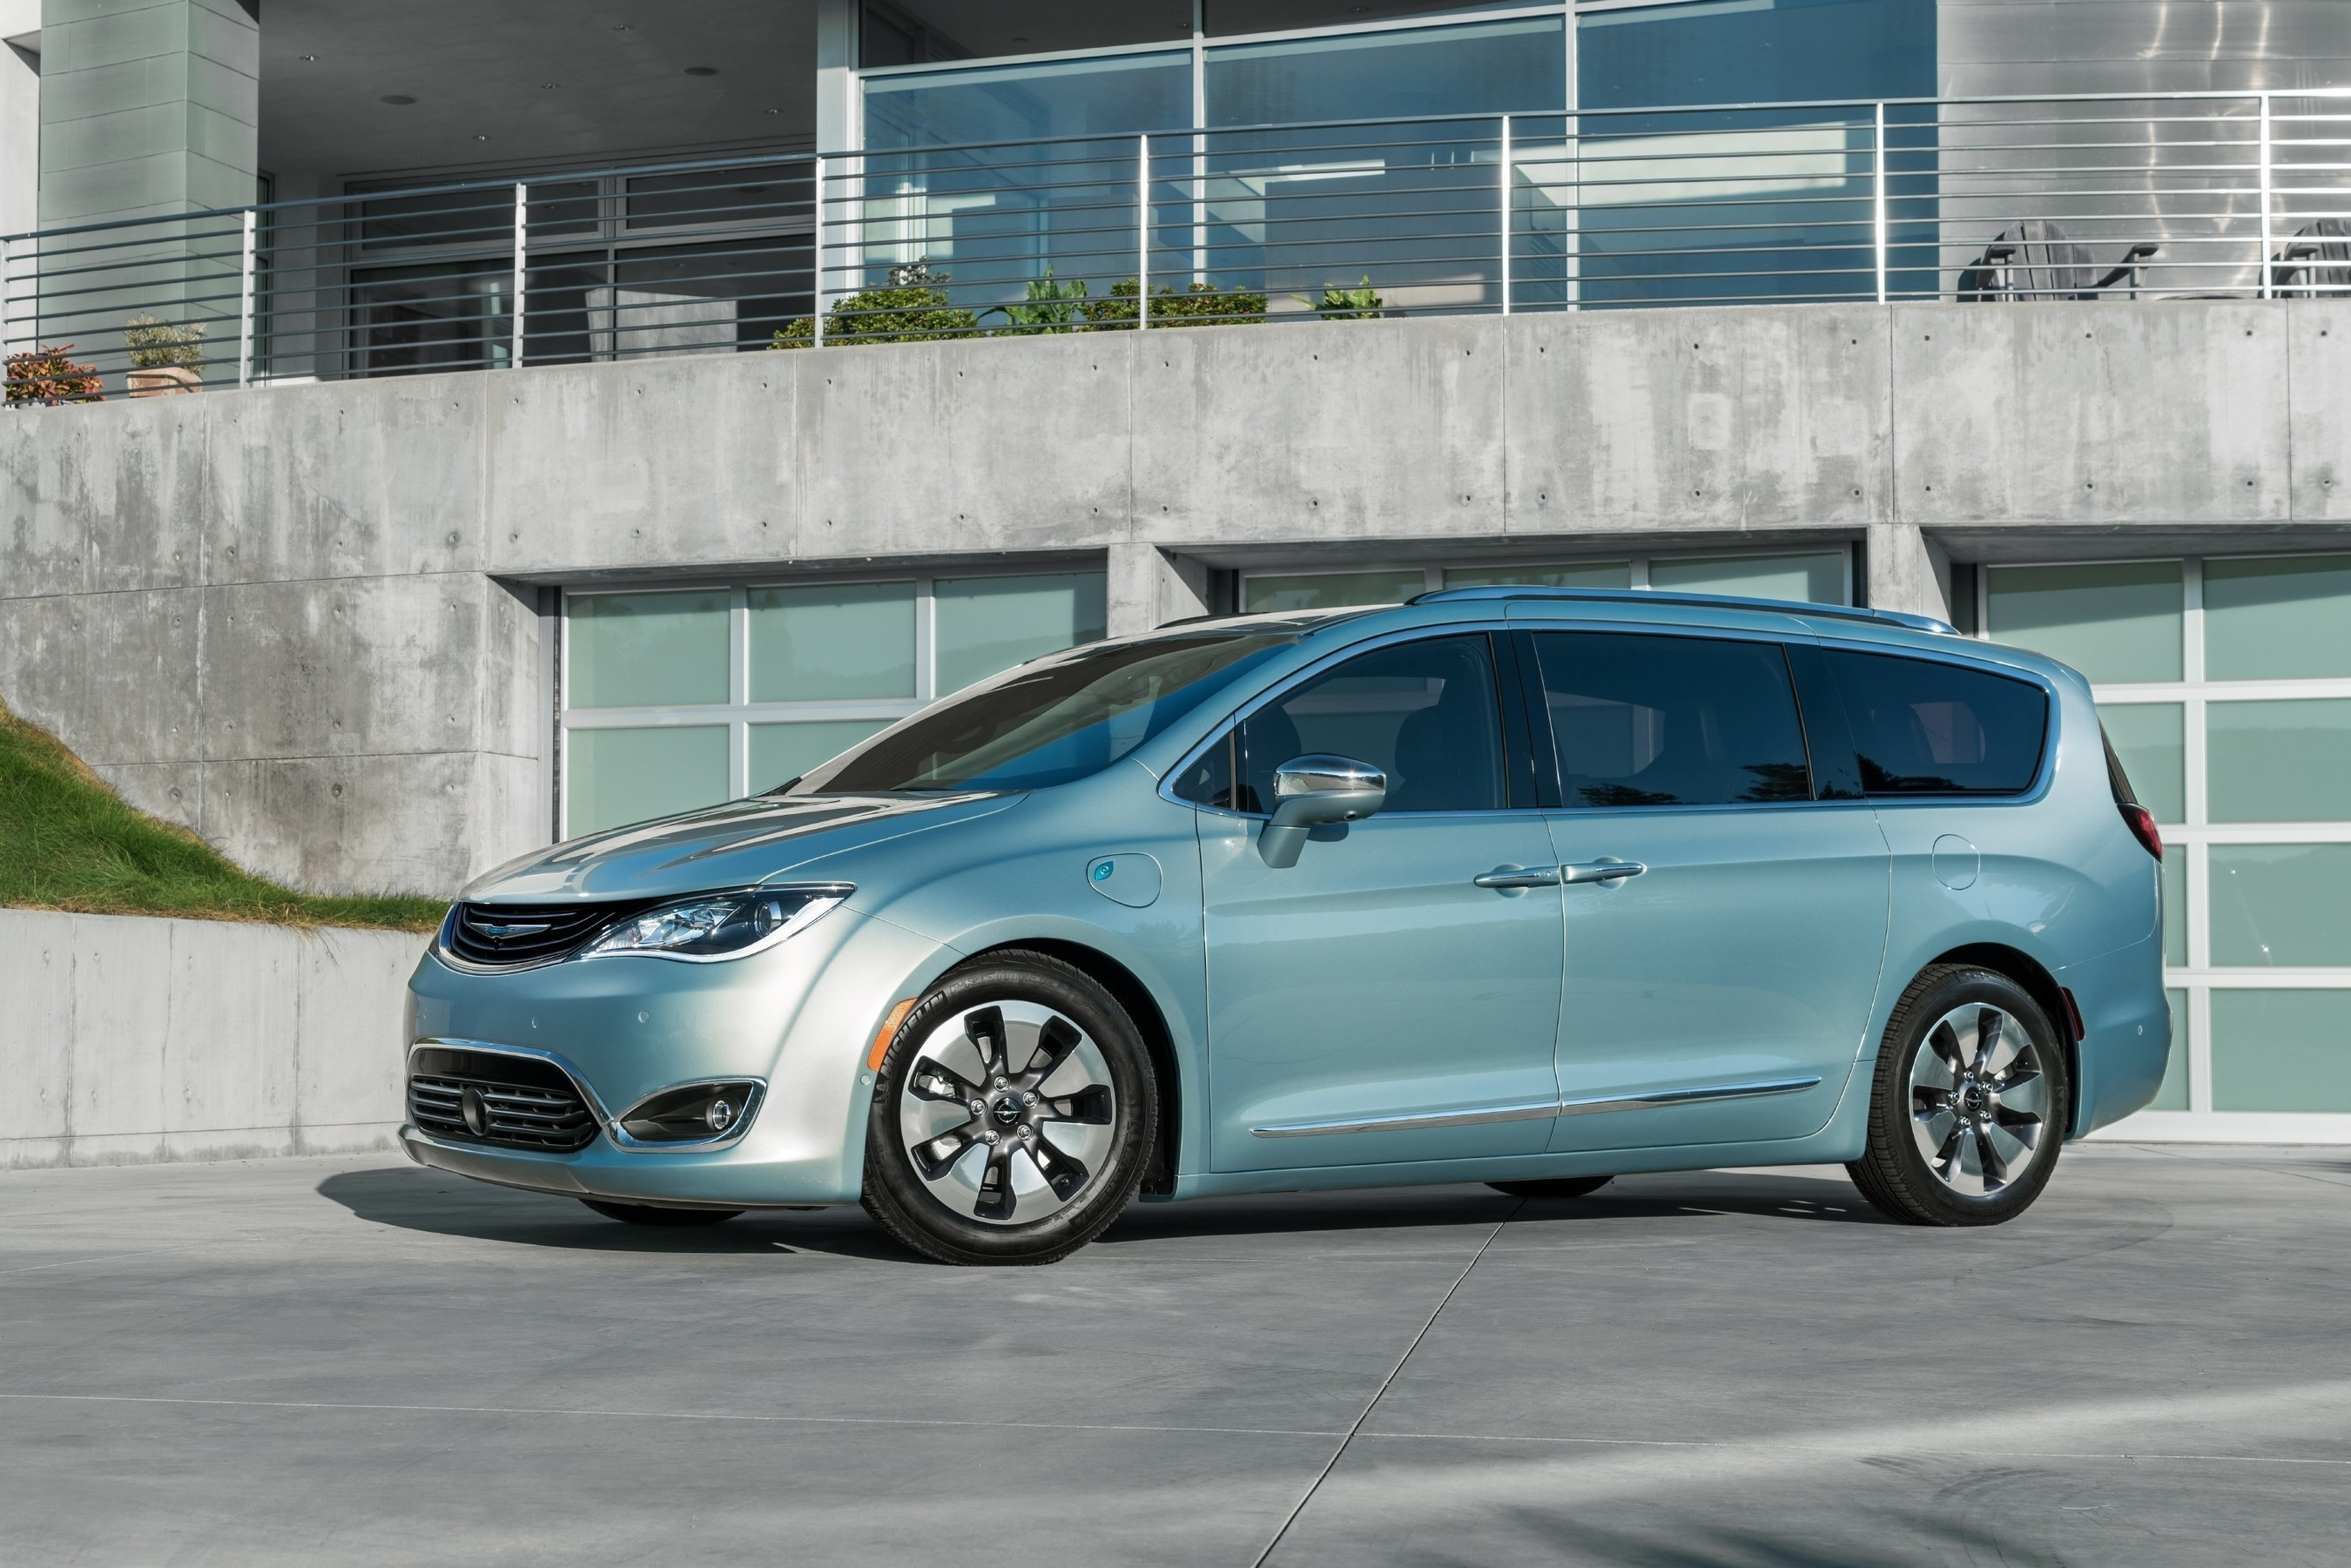 The Google Self-Driving Car Project and FCA announced today, in a first-of-its-kind collaboration, that they will integrate Google's self-driving technology into the all-new 2017 Chrysler Pacifica Hybrid minivan to expand Google's existing self-driving test program. This marks the first time that Google has worked directly with an automaker to integrate its self-driving system, including its sensors and software, into a passenger vehicle.